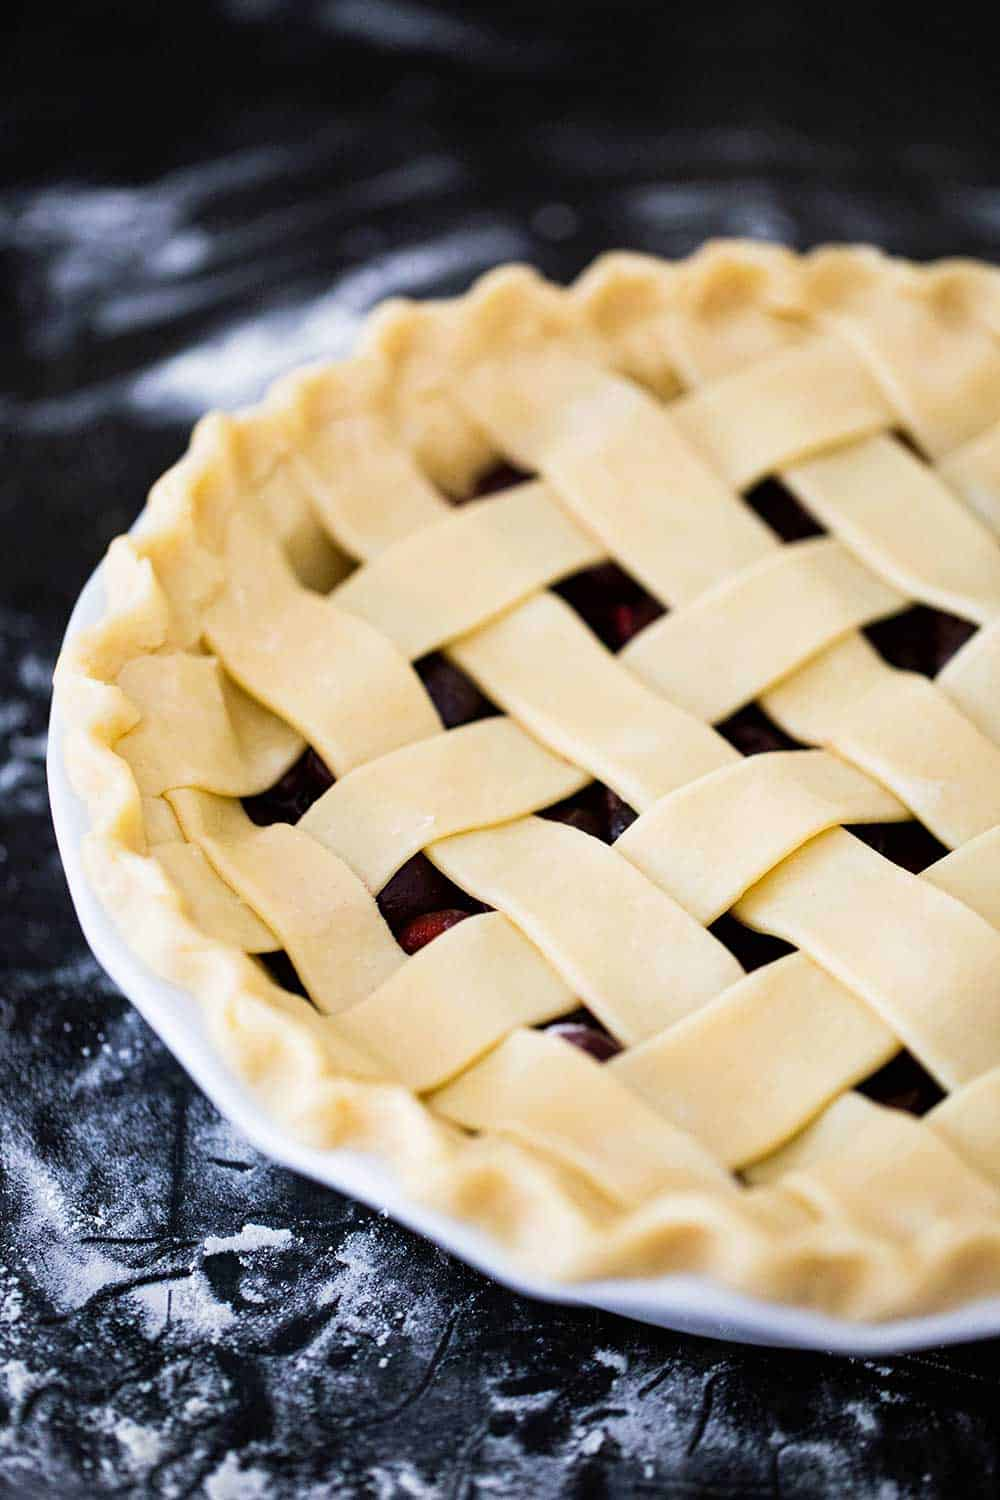 An unbaked cherry pie in a white pie dish with strips of pie dough on top in a lattice formation.